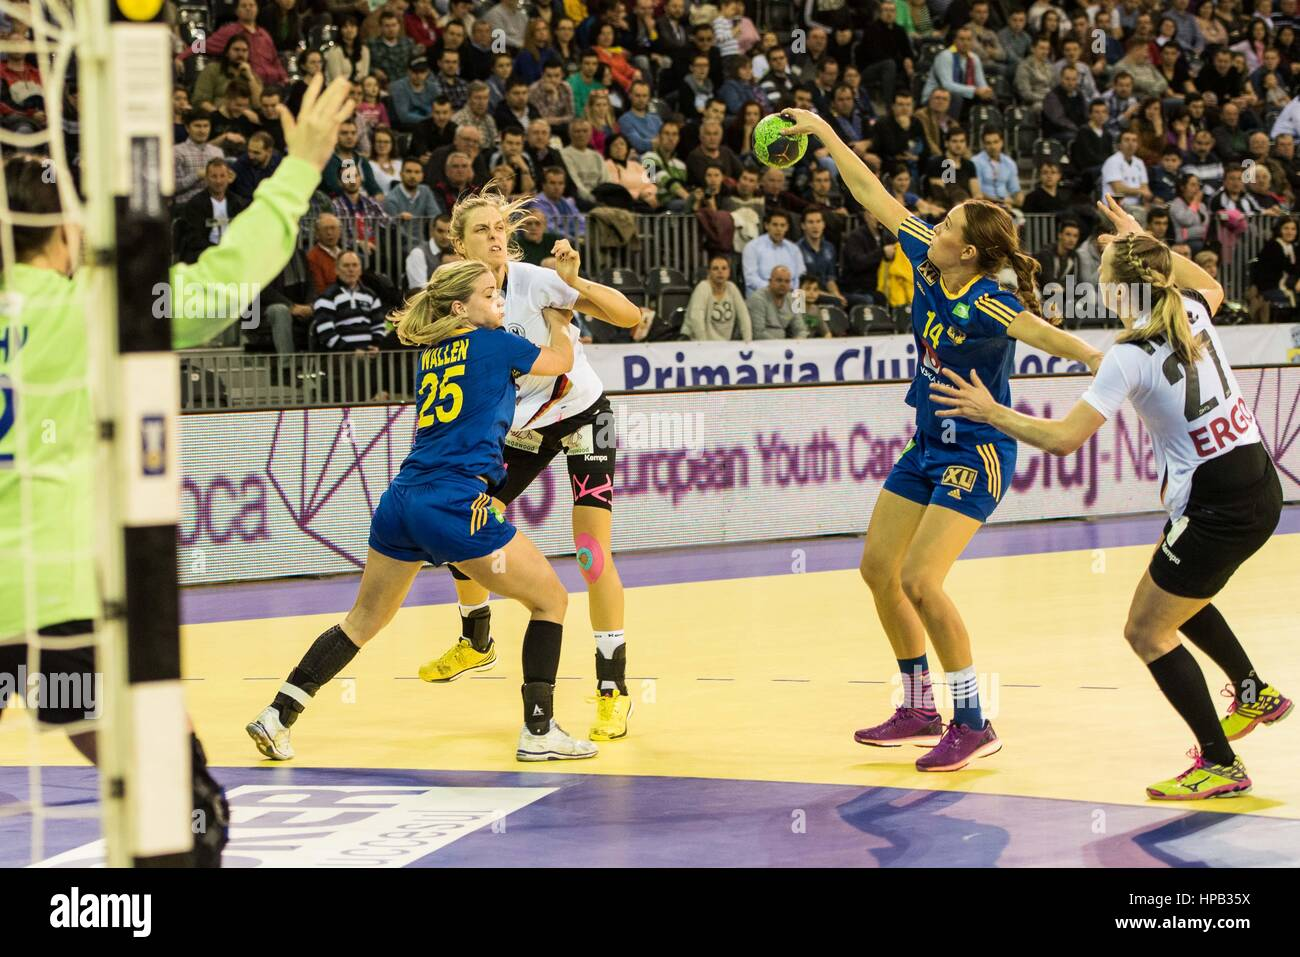 March 20, 2015: Worez Nina #27, Susan Muller #22 of Germany National Team, Wallen Angelica #25  and Weteberg Johanna - Stock Image